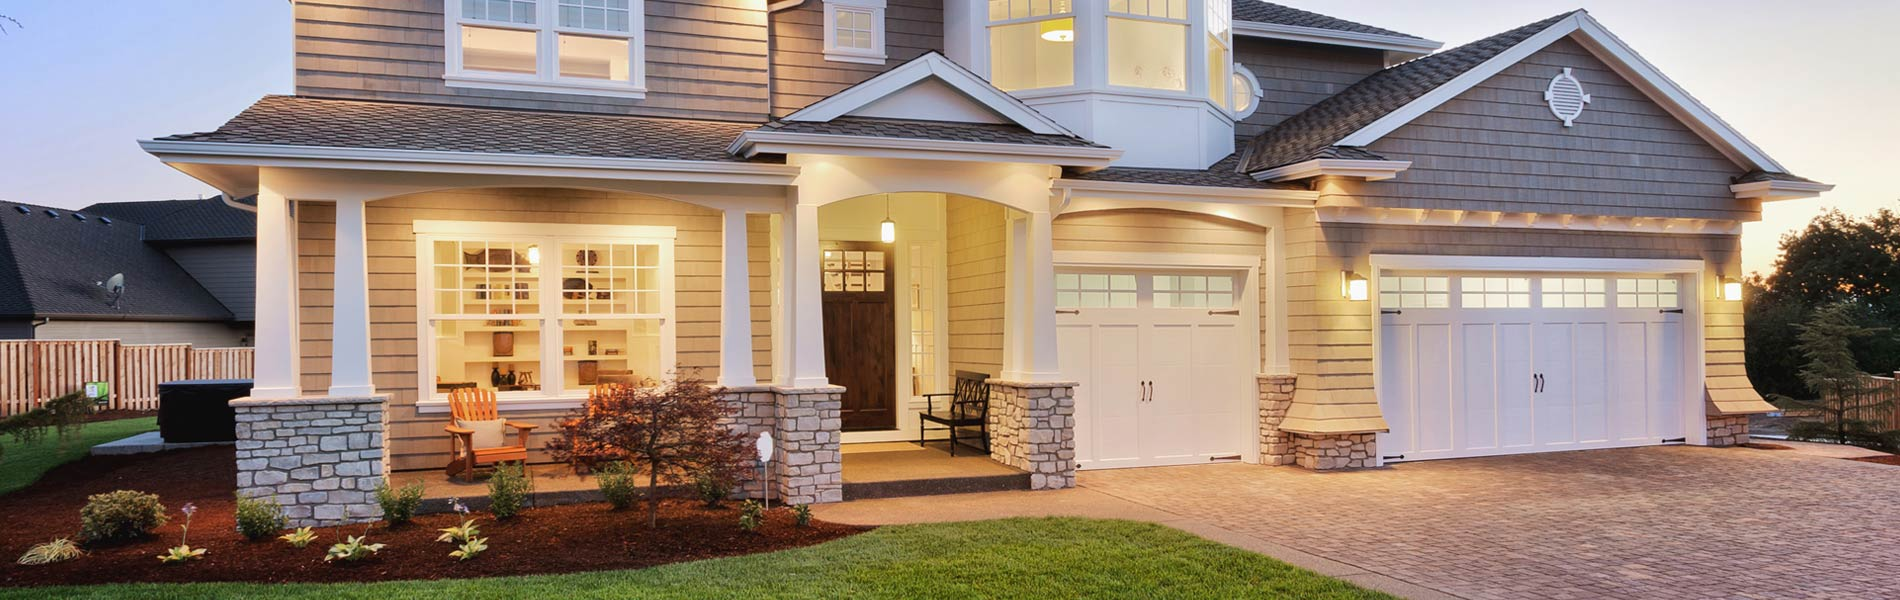 Garage Door Shop Repairs Tustin, CA 714-923-7303